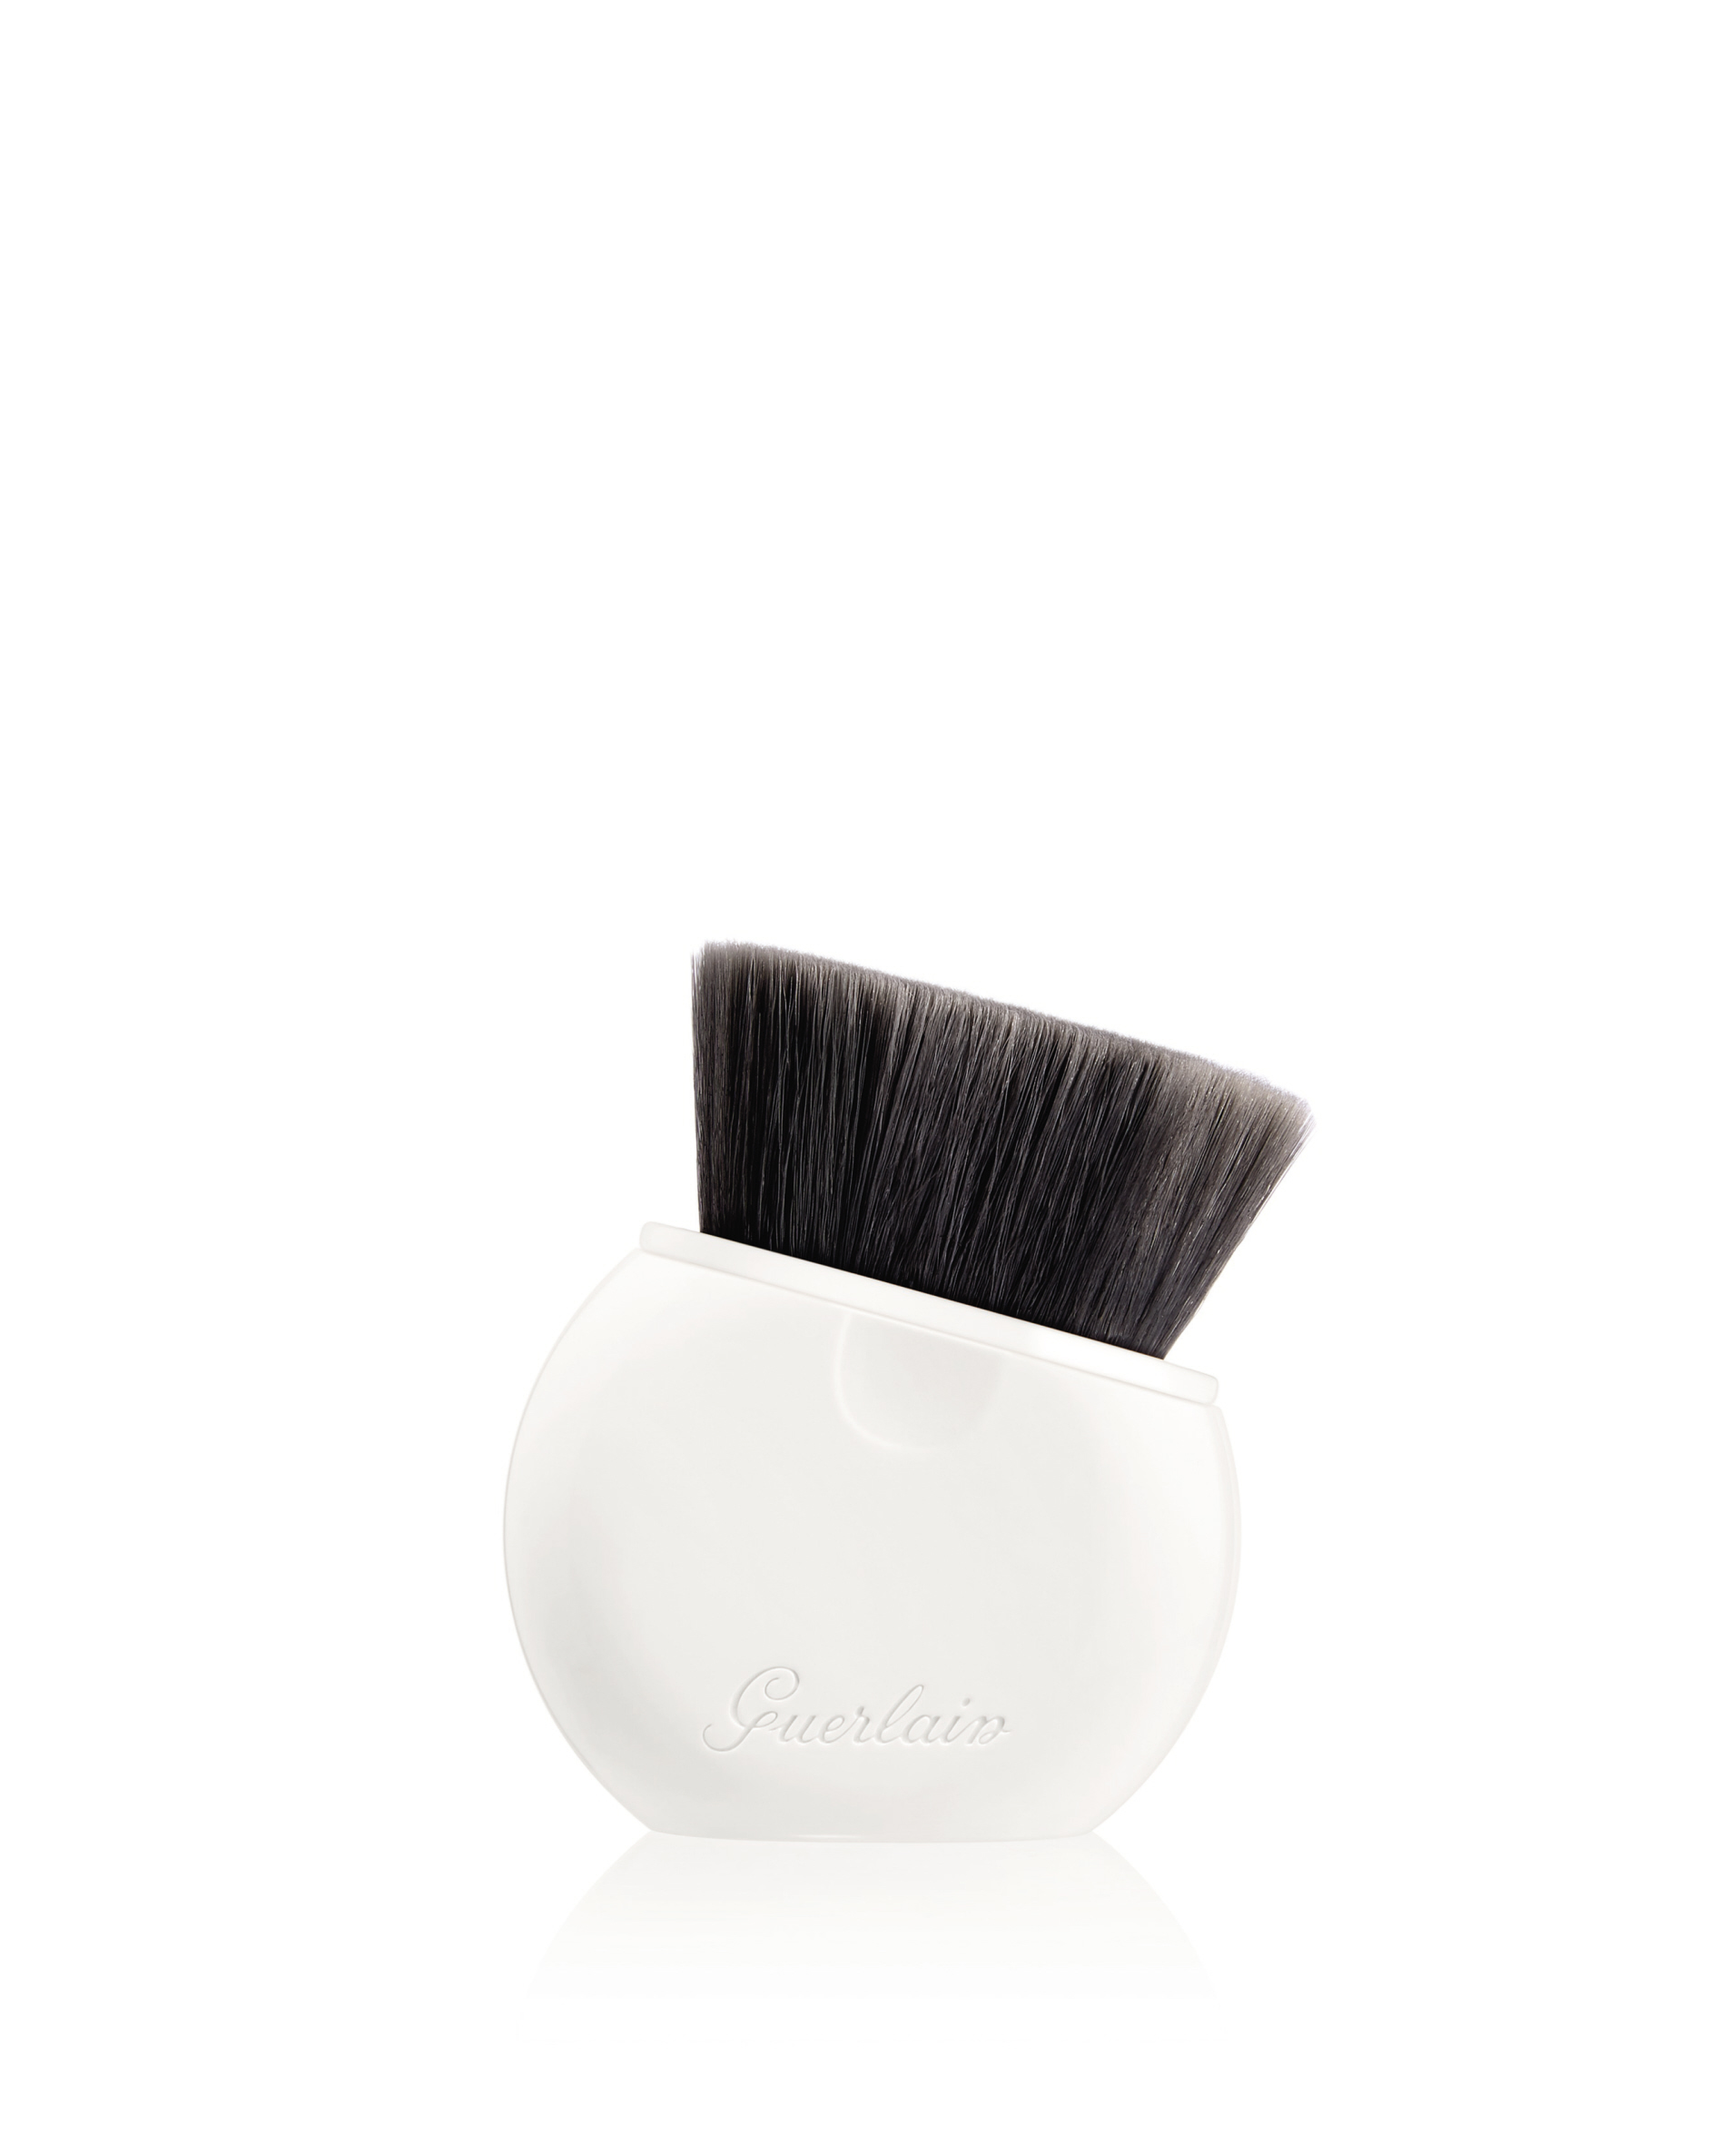 L'Essentiel Retractable Foundation Brush